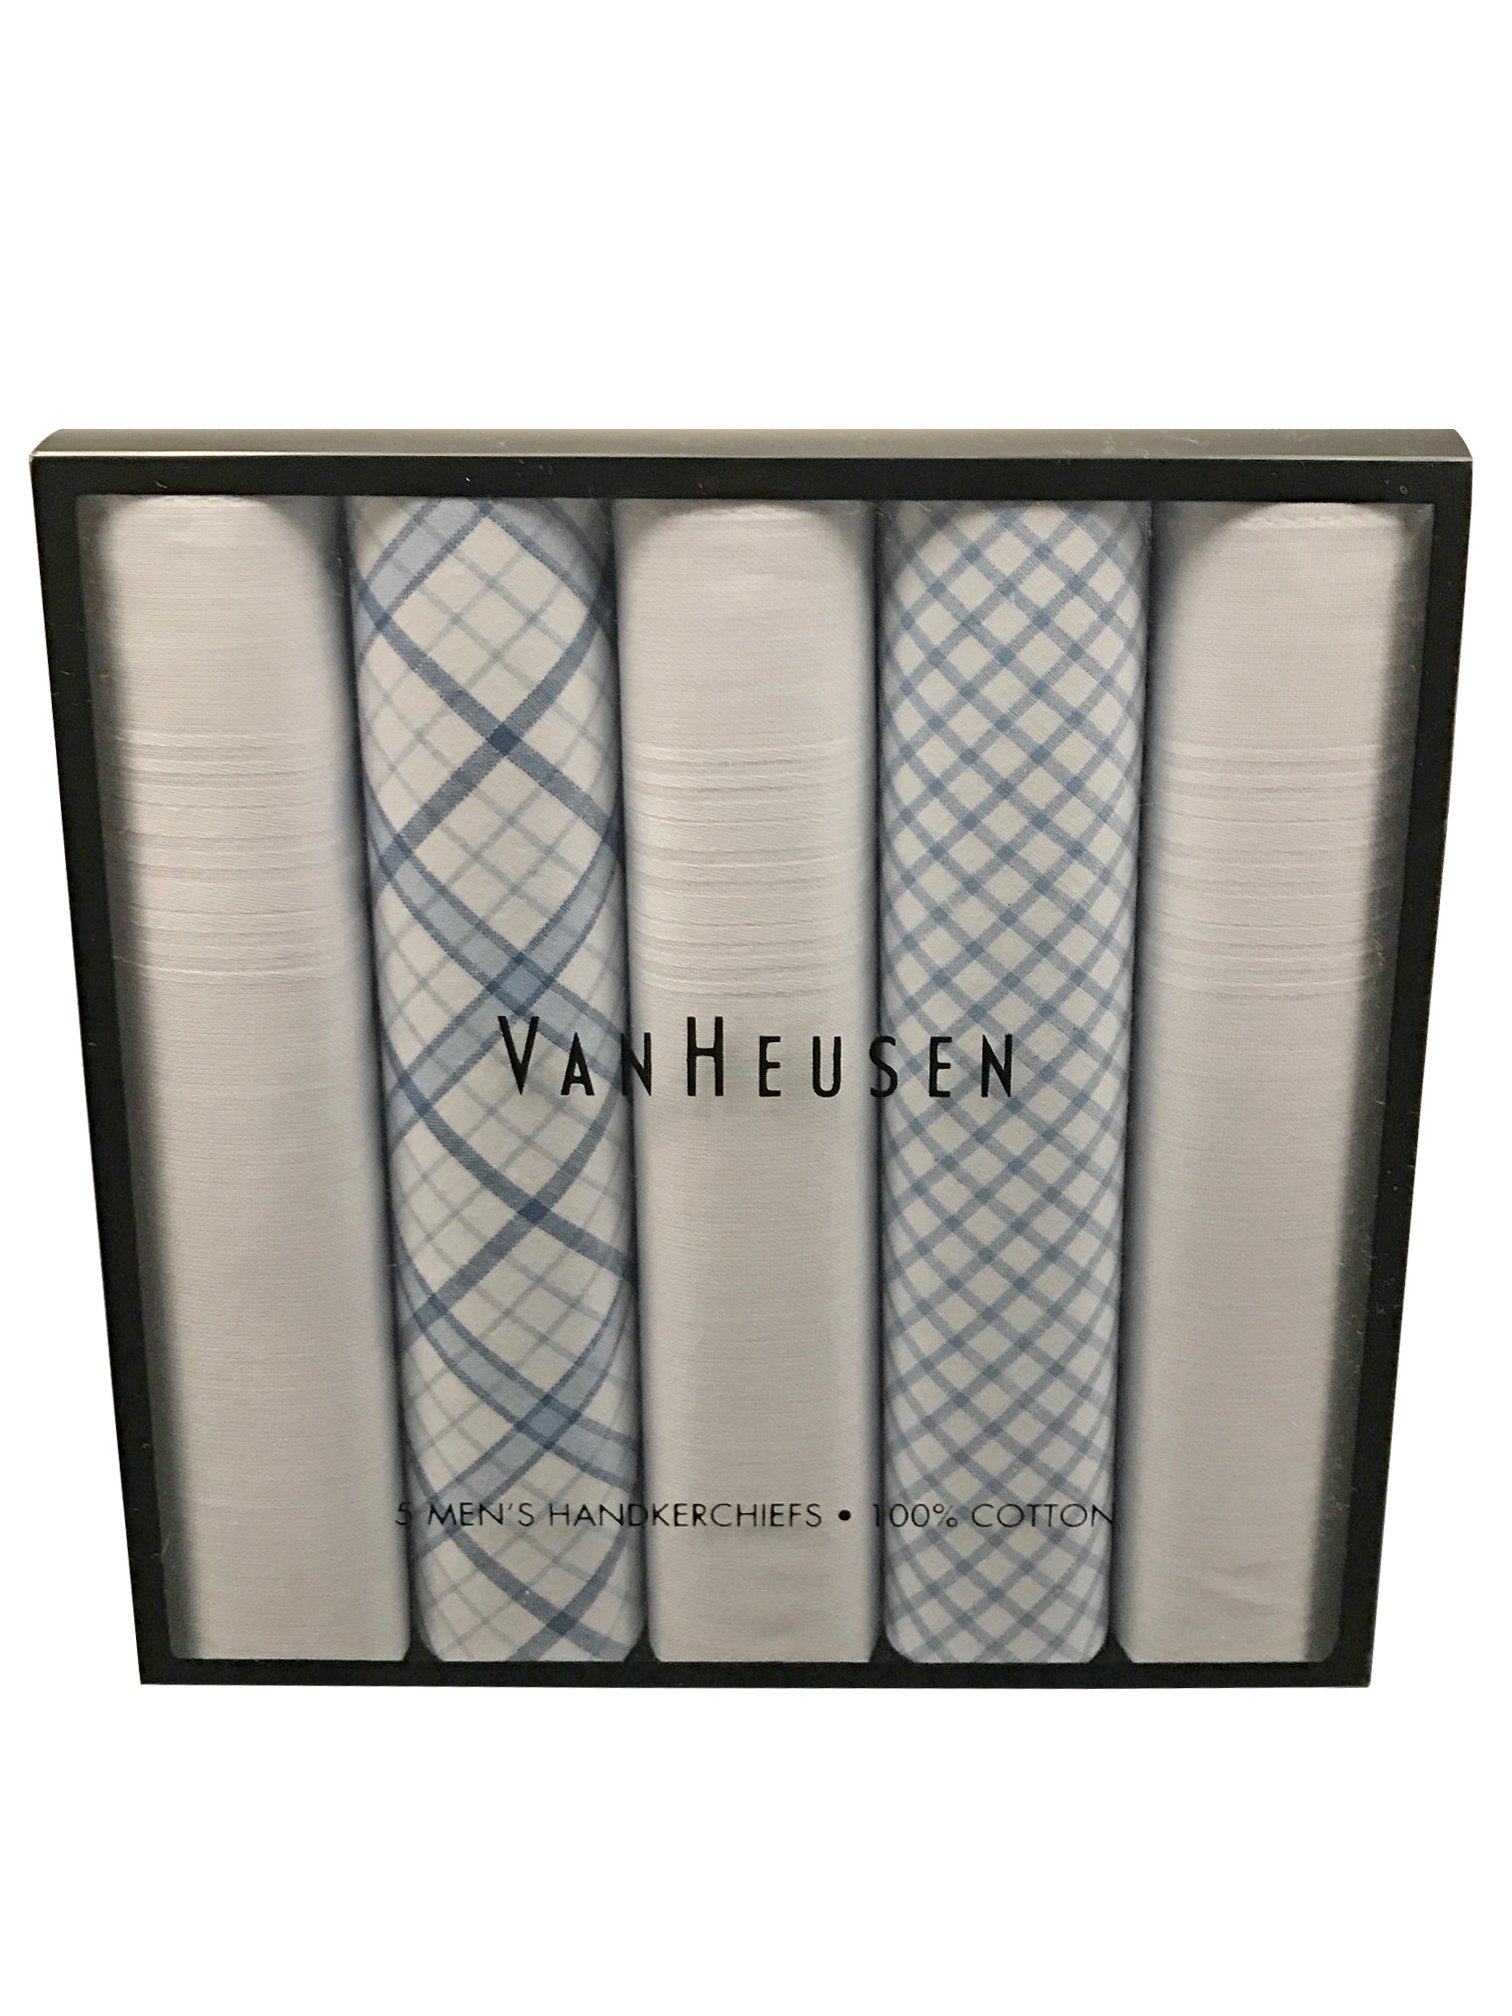 Van Heusen 5 pack Handkerchief Gift Box (Navy)